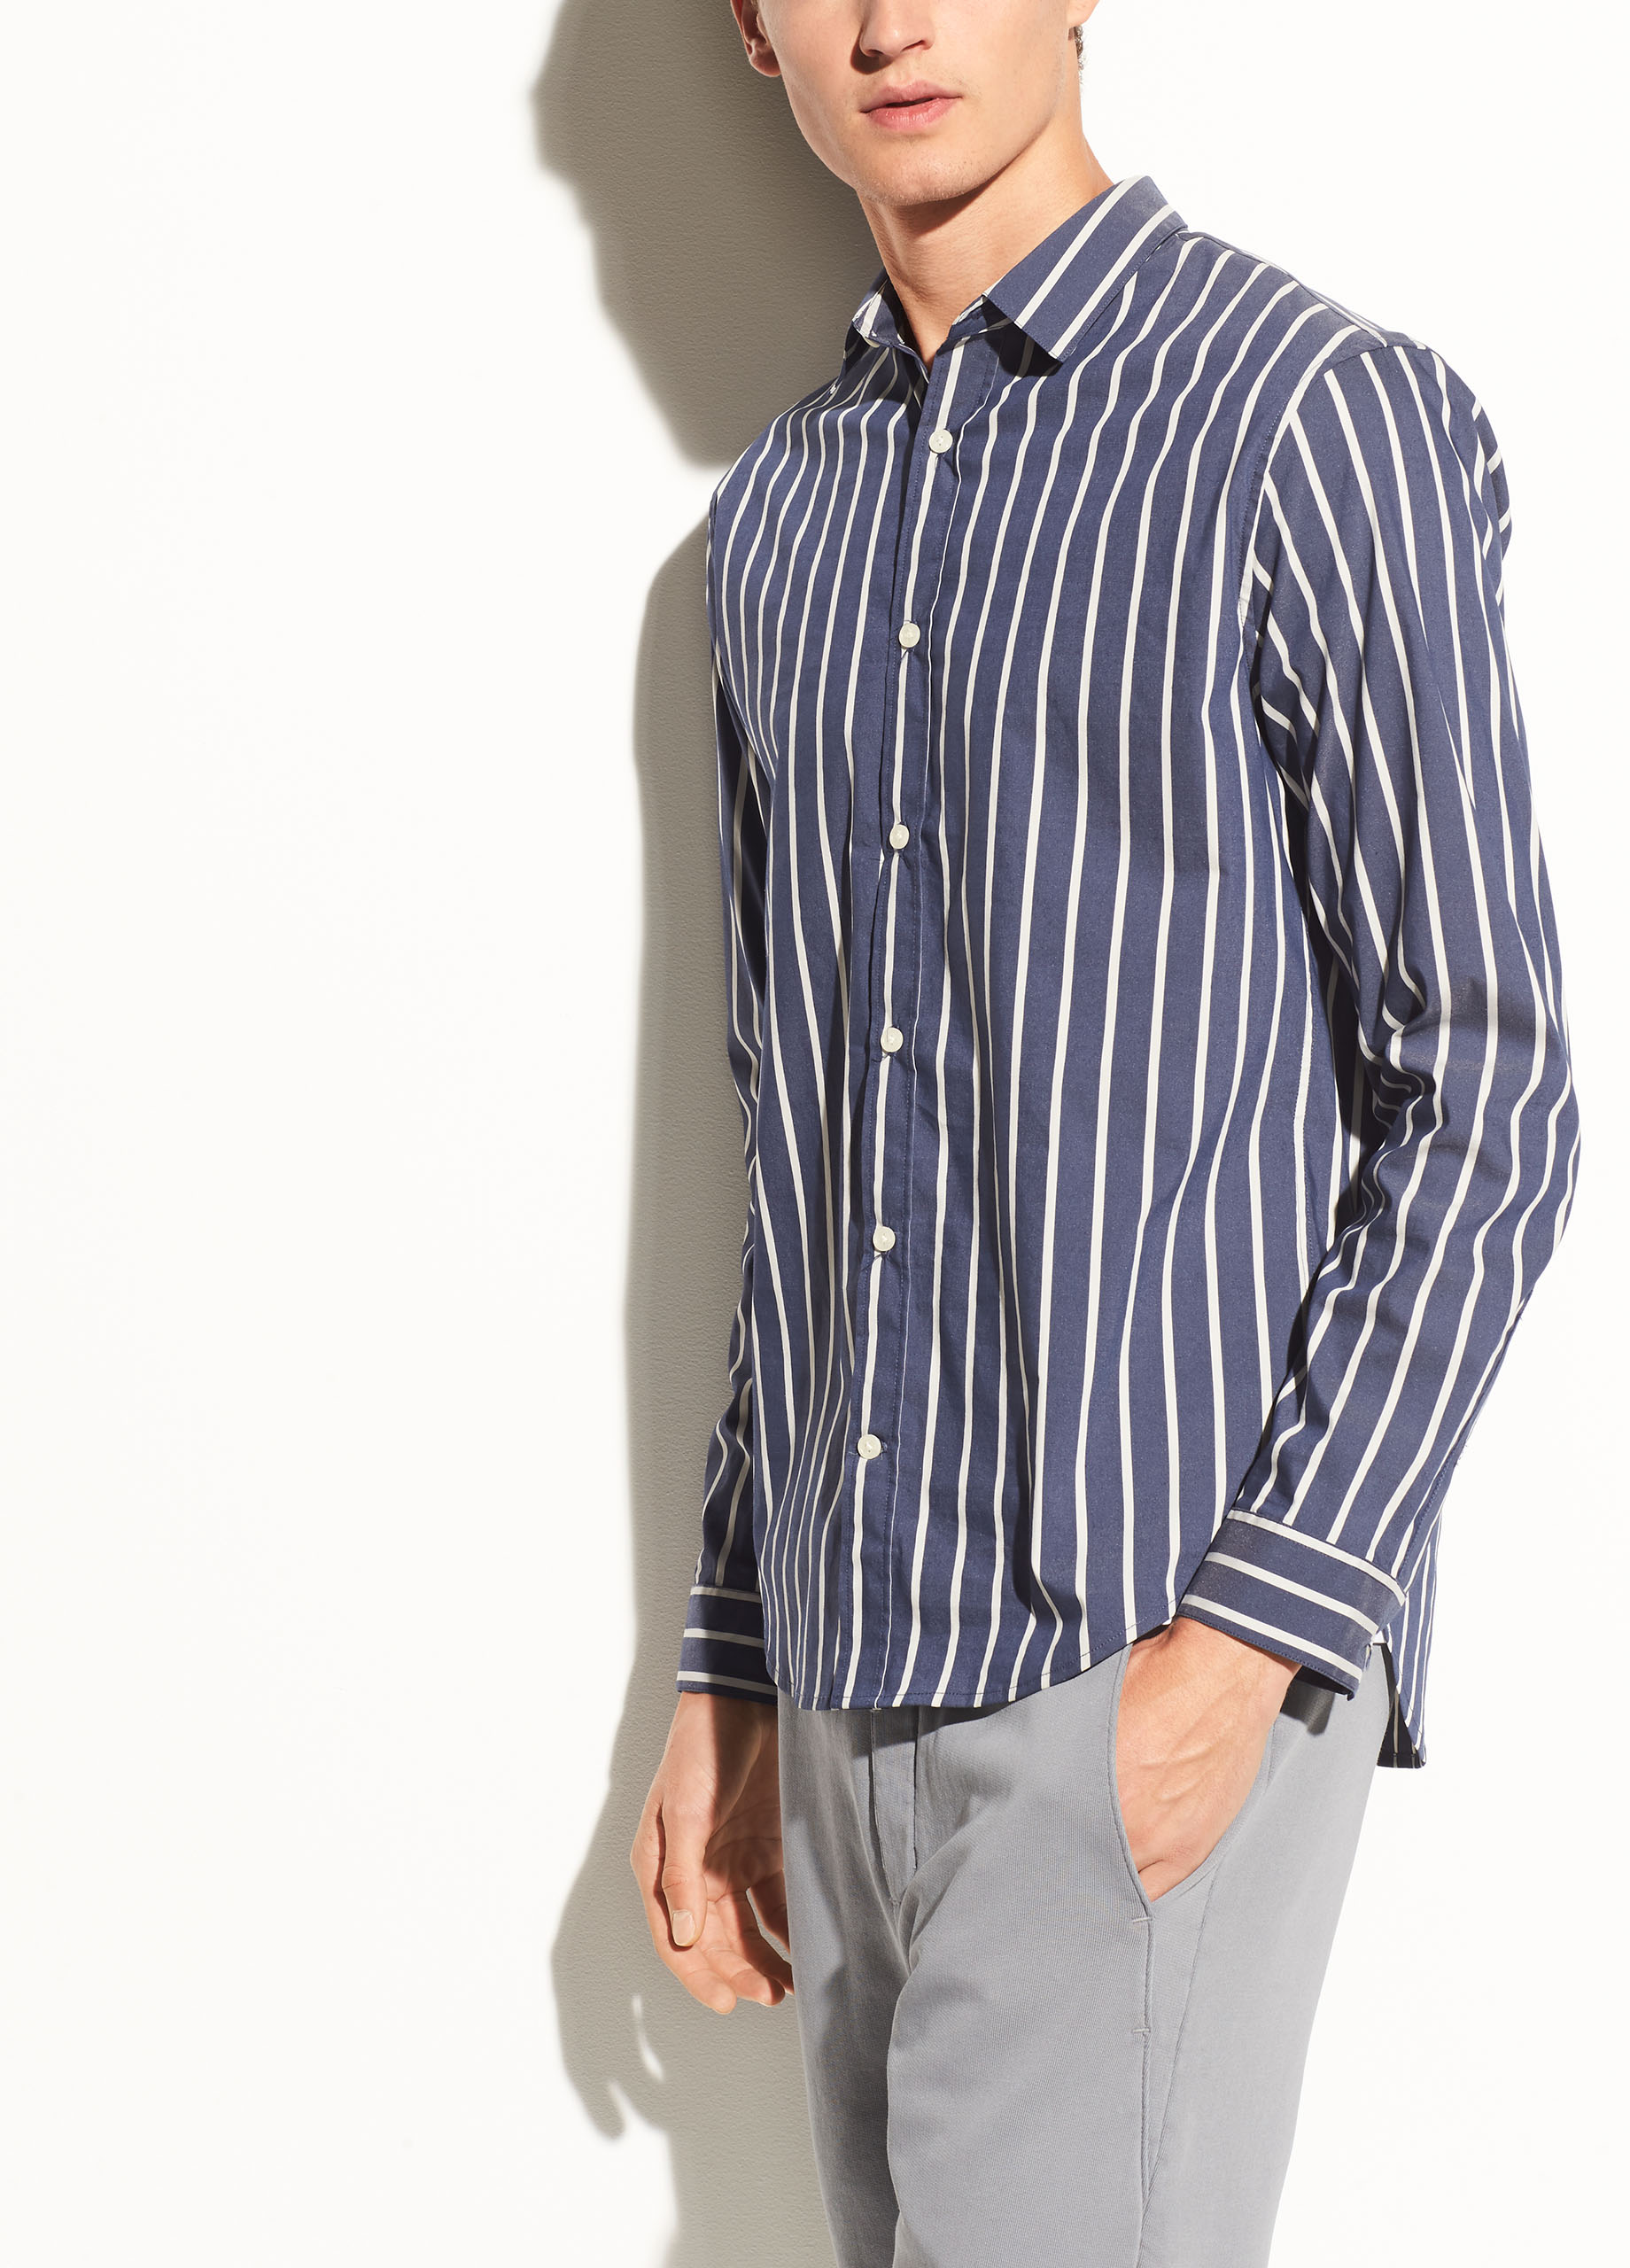 Mens Stretch-Cotton Shirt Vince Outlet Top Quality Limit Discount Free Shipping Newest Clearance Get To Buy Marketable bxSsw